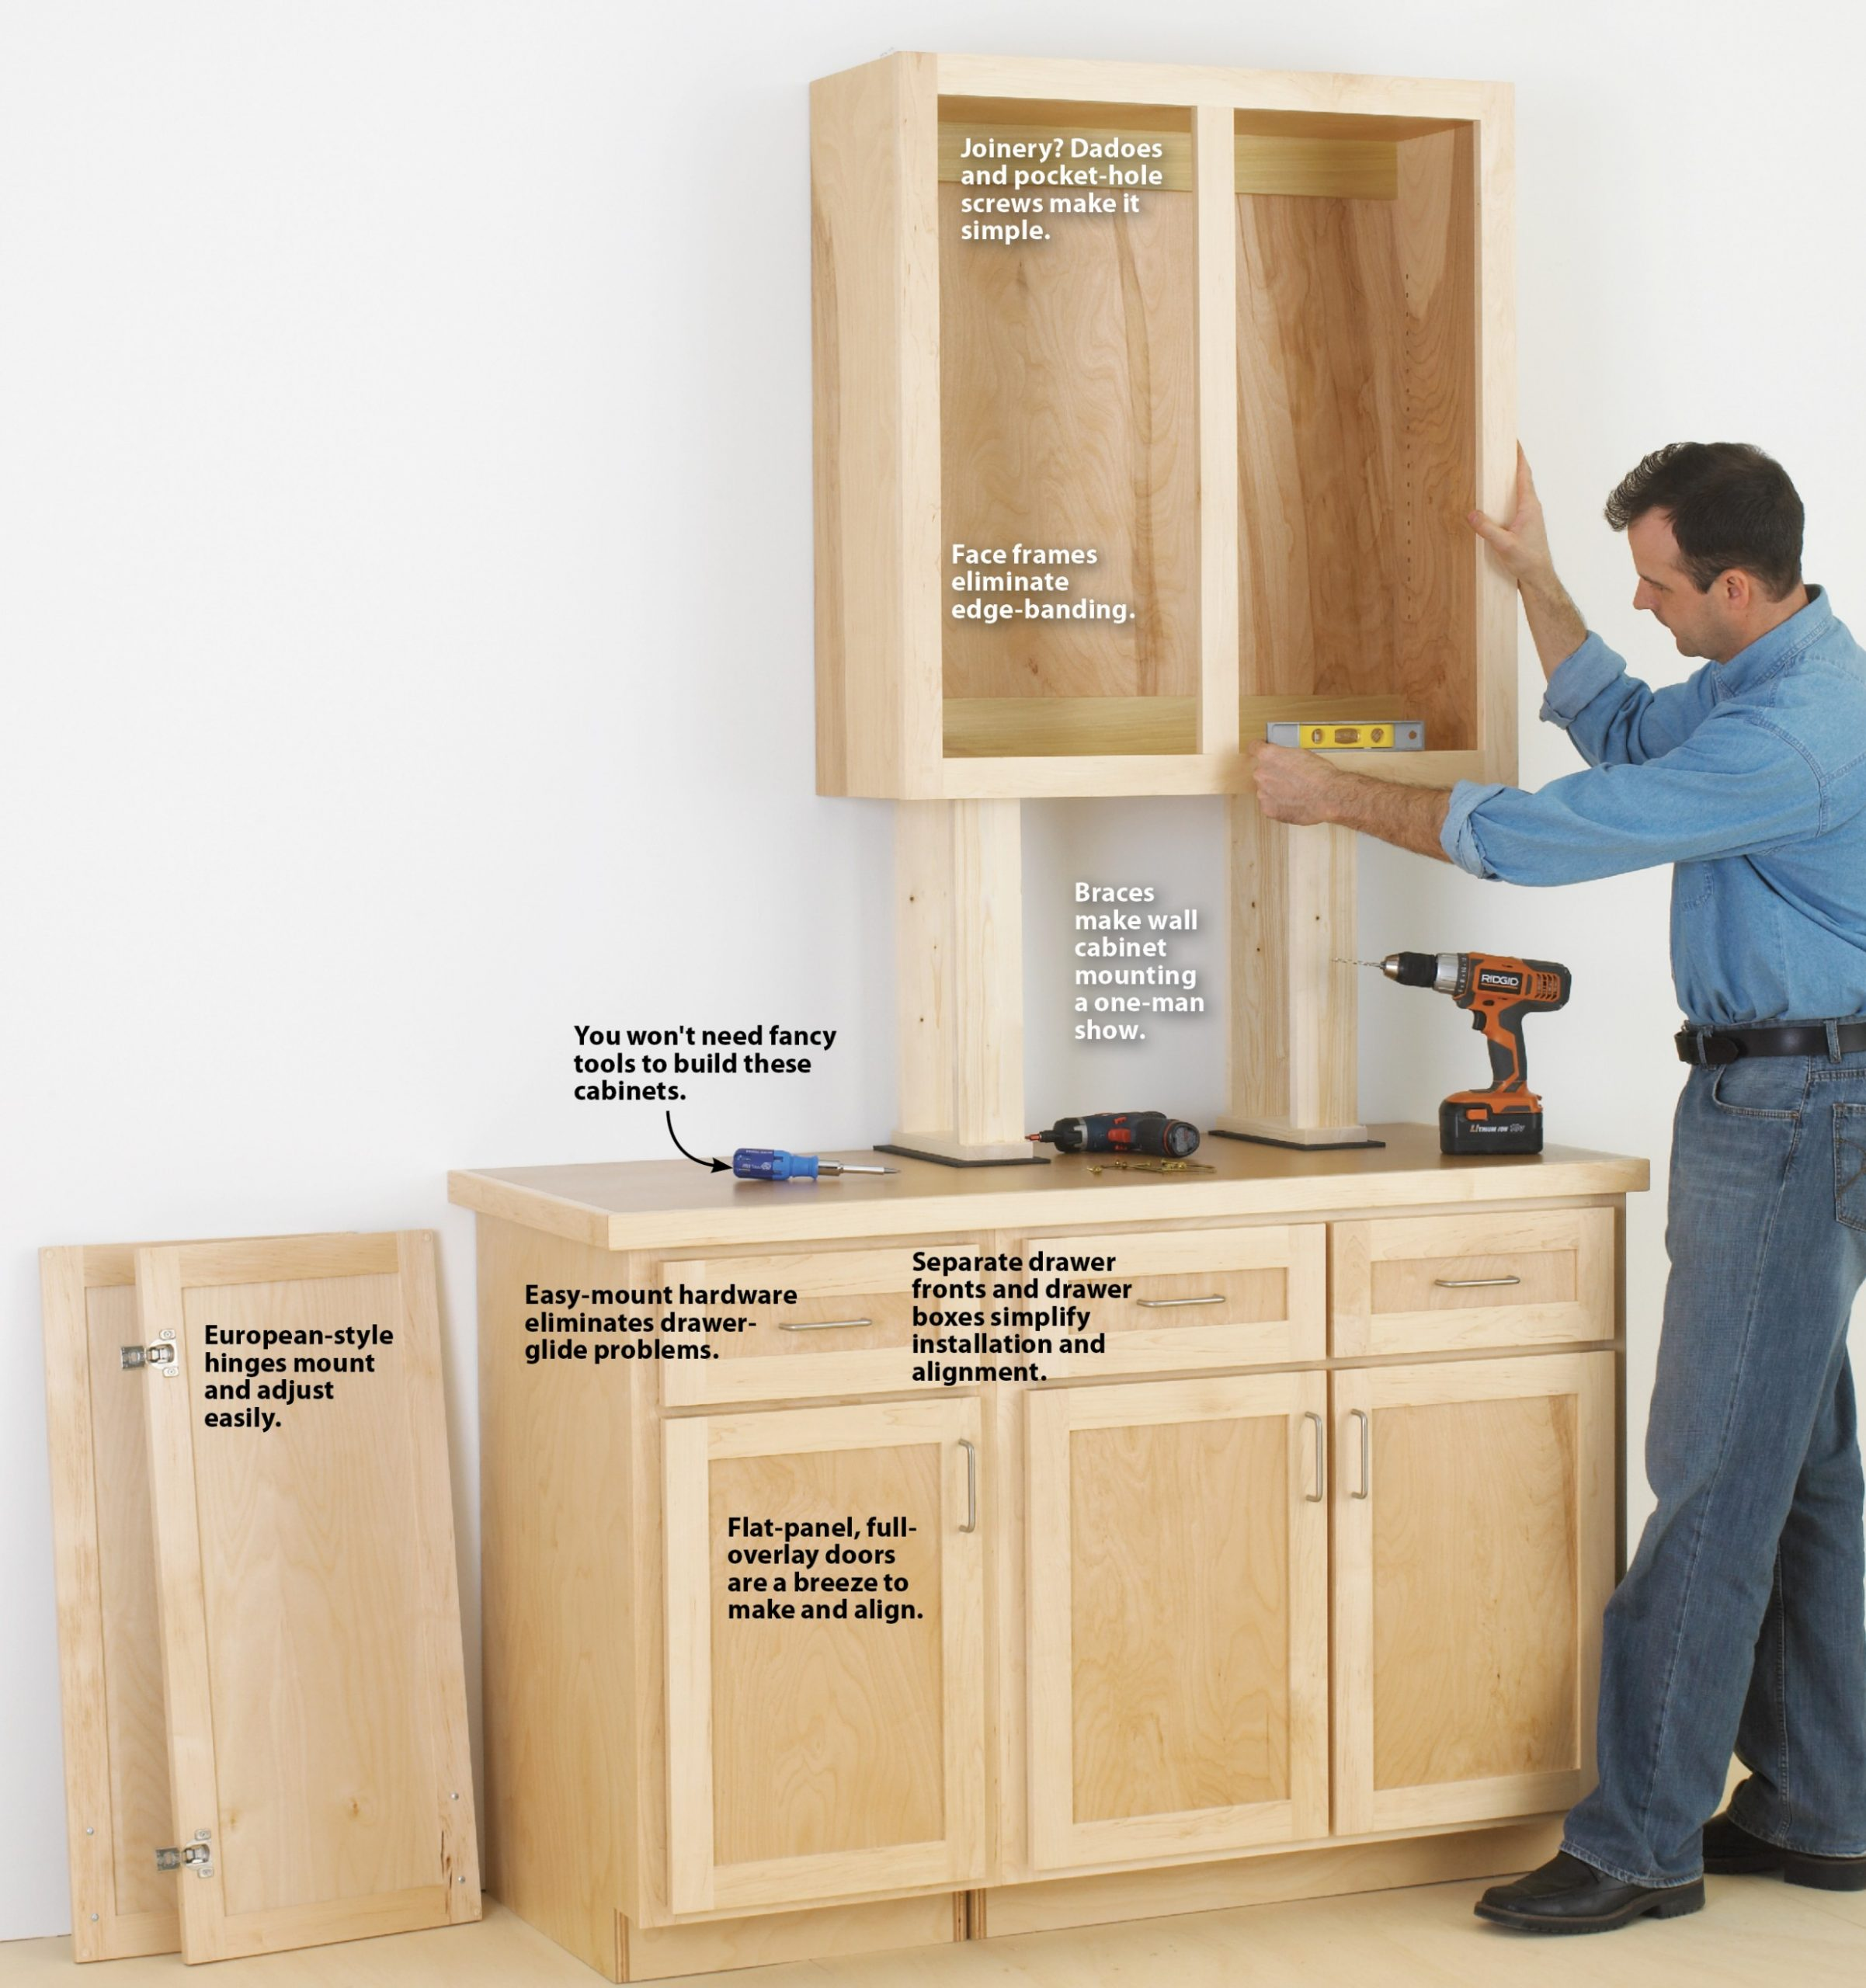 Make Cabinets the Easy Way  WOOD Magazine - Build Your Own Kitchen Base Cabinets